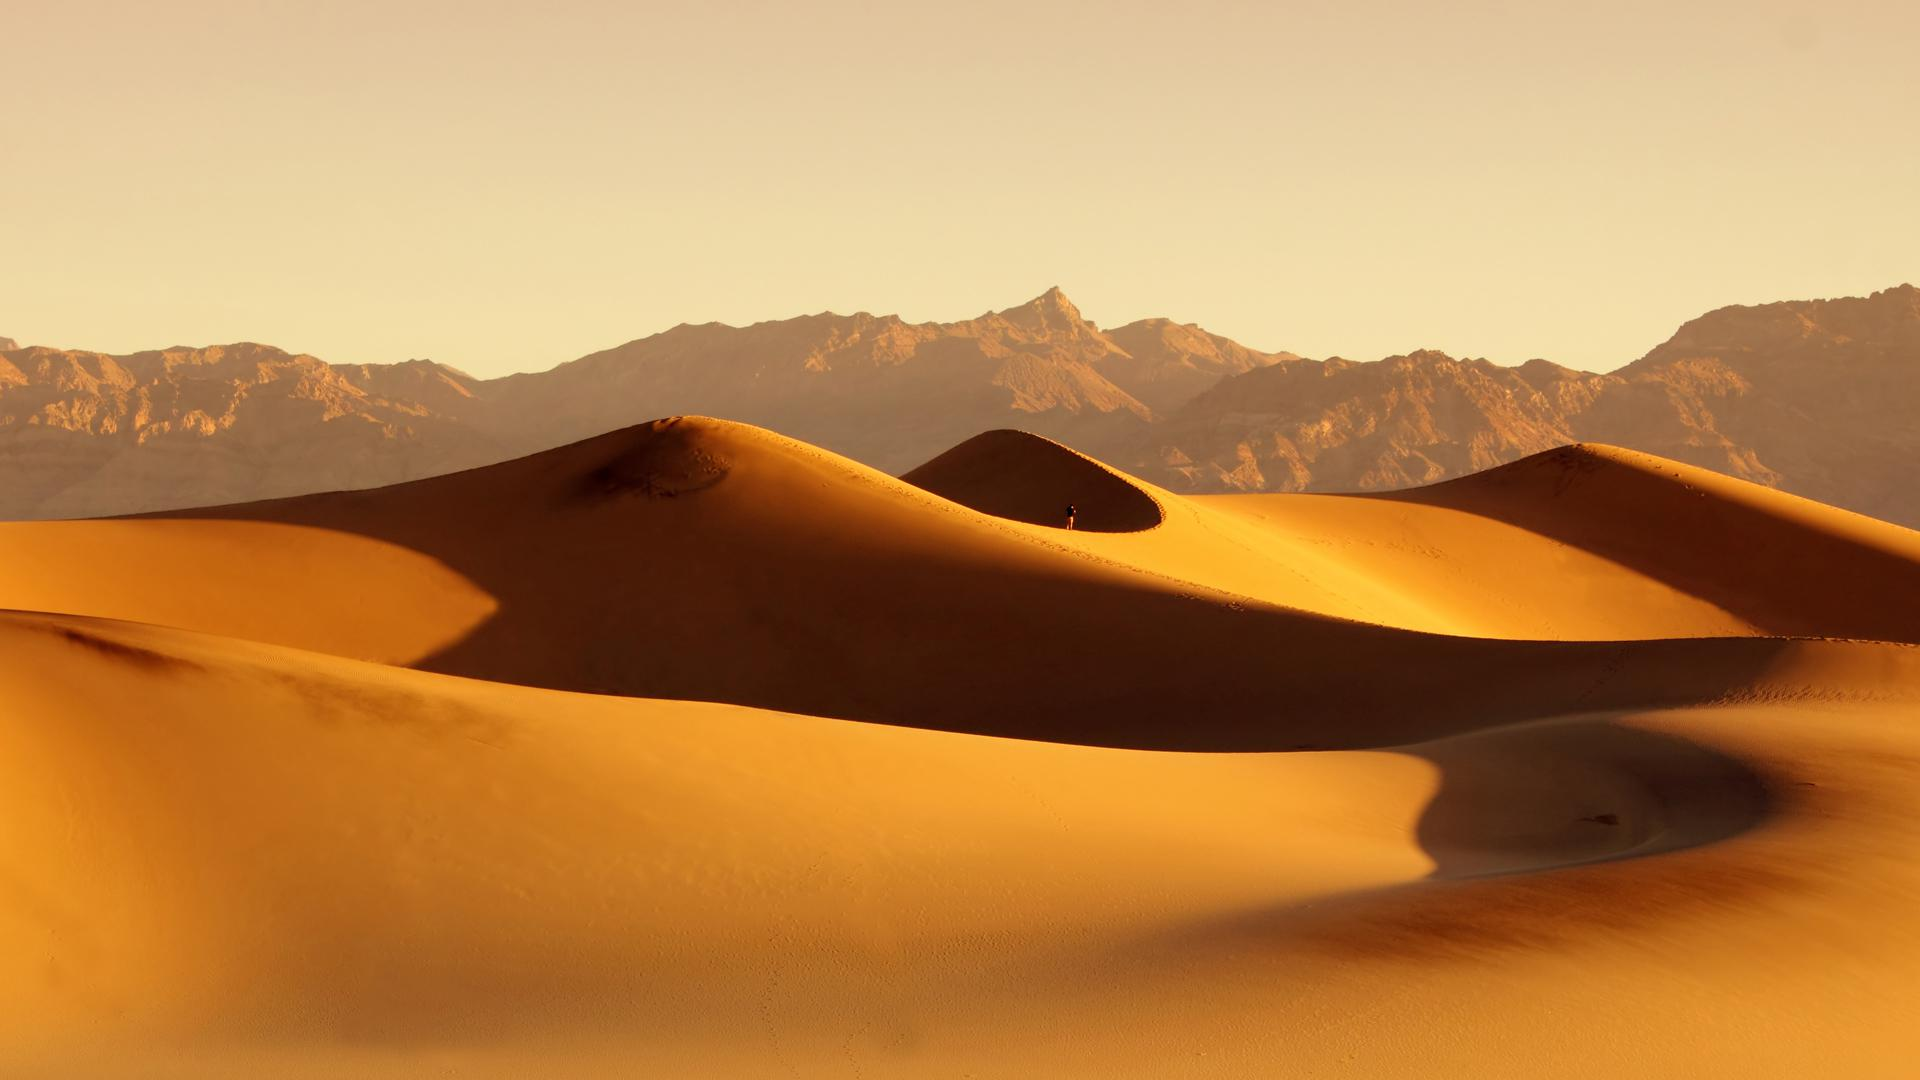 Animated Happy New Year D Hd Desert Hd 1080p Wallpaper Download Free 141238